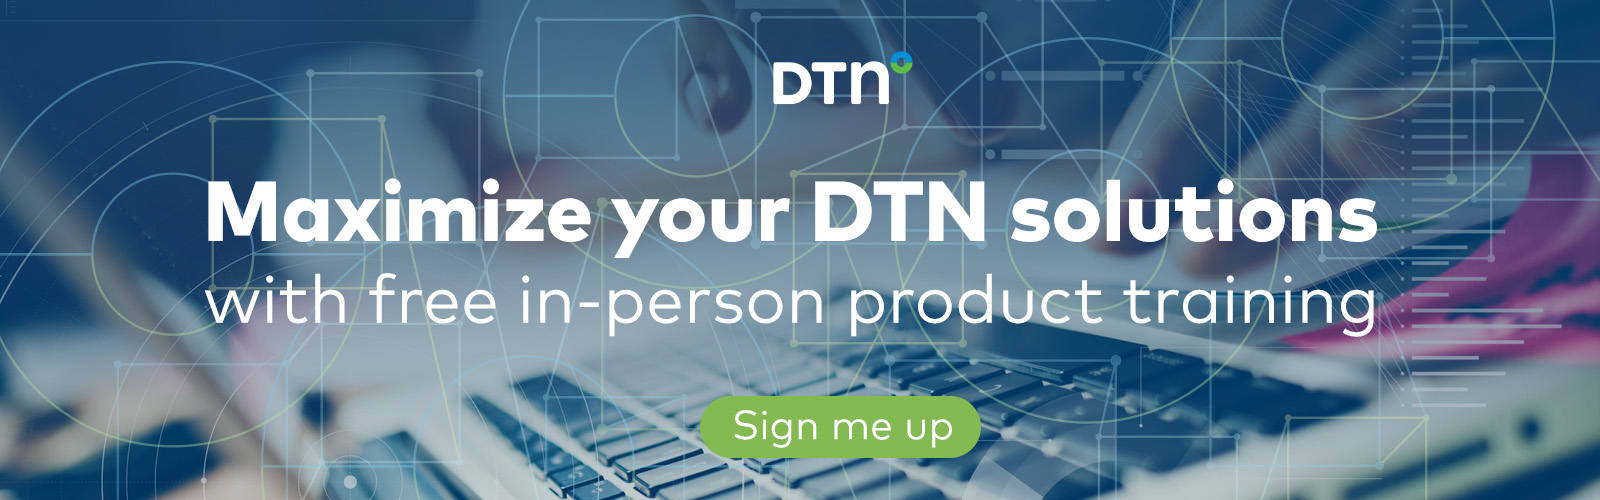 Maximize your DTN solutions with free in-person product training - Sign me up